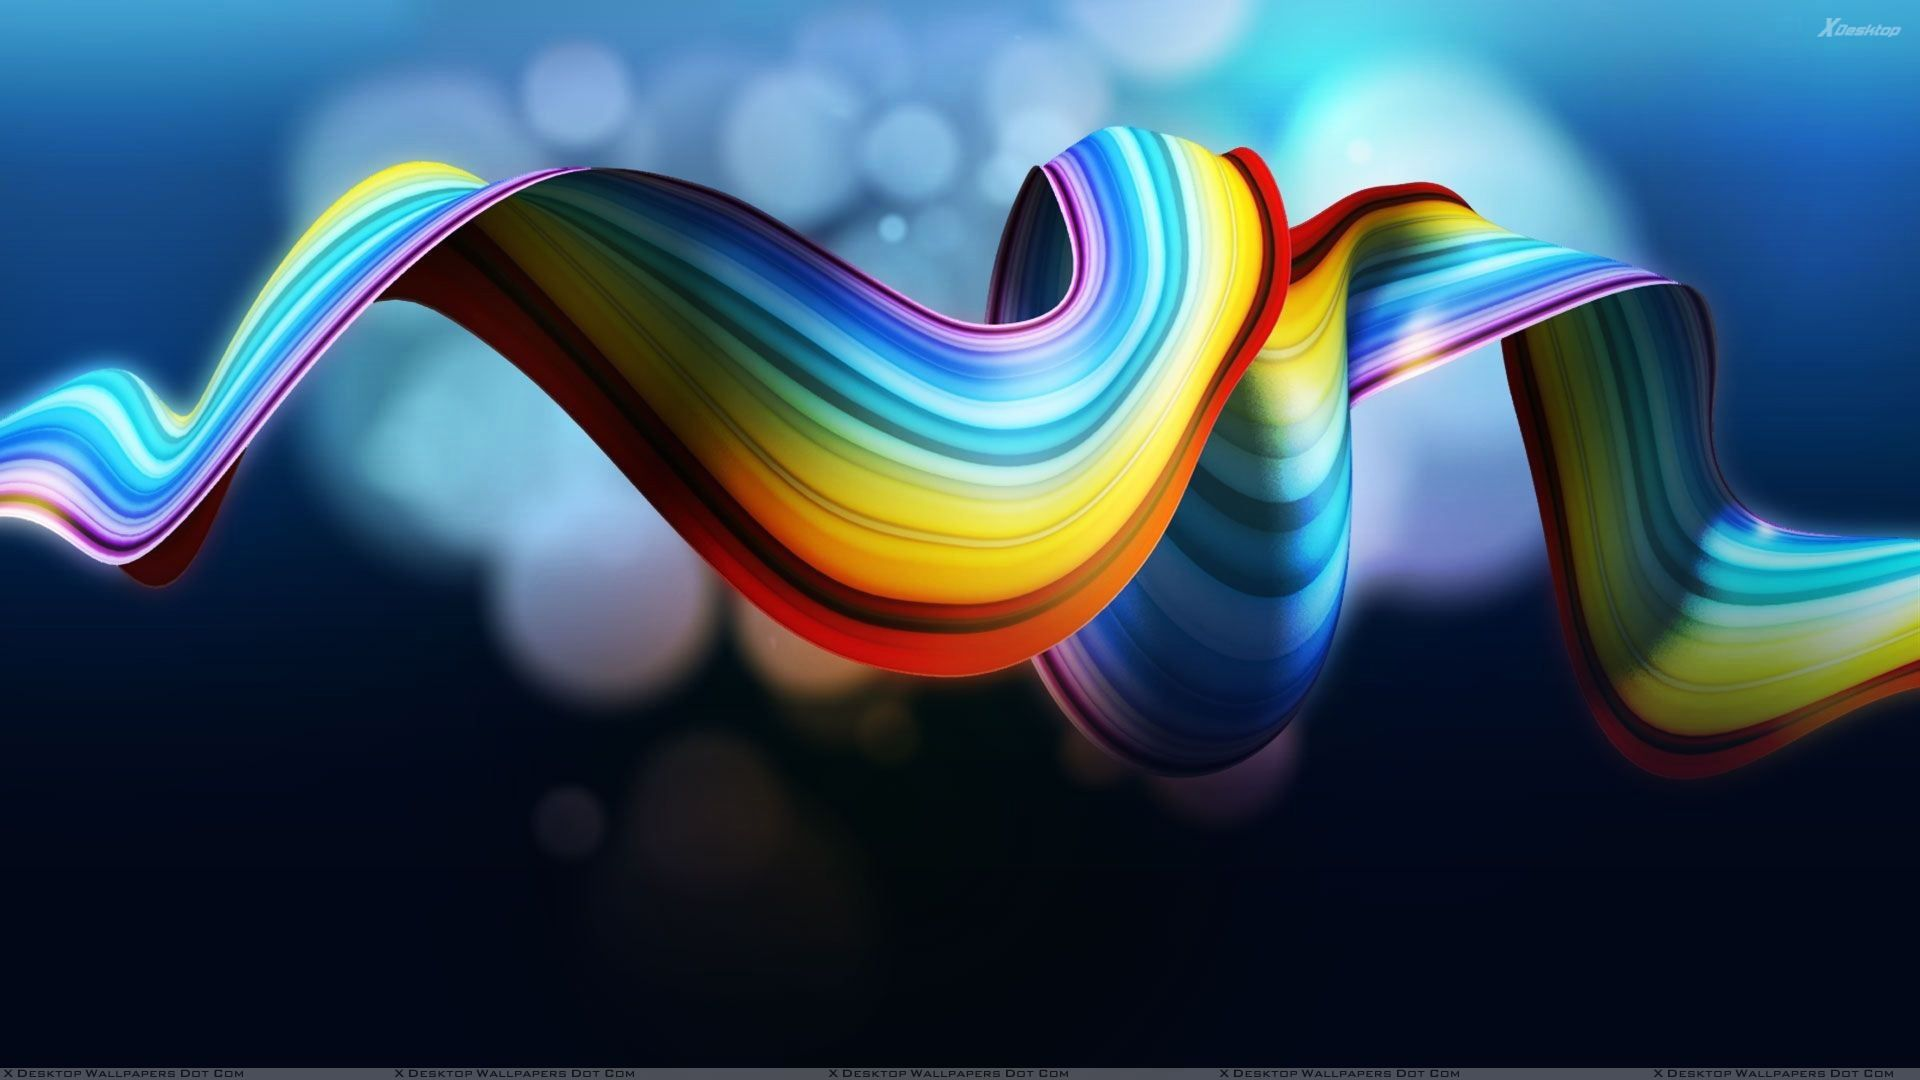 Hd Wallpaper Rainbow Abstract Backgrounds Is An HD